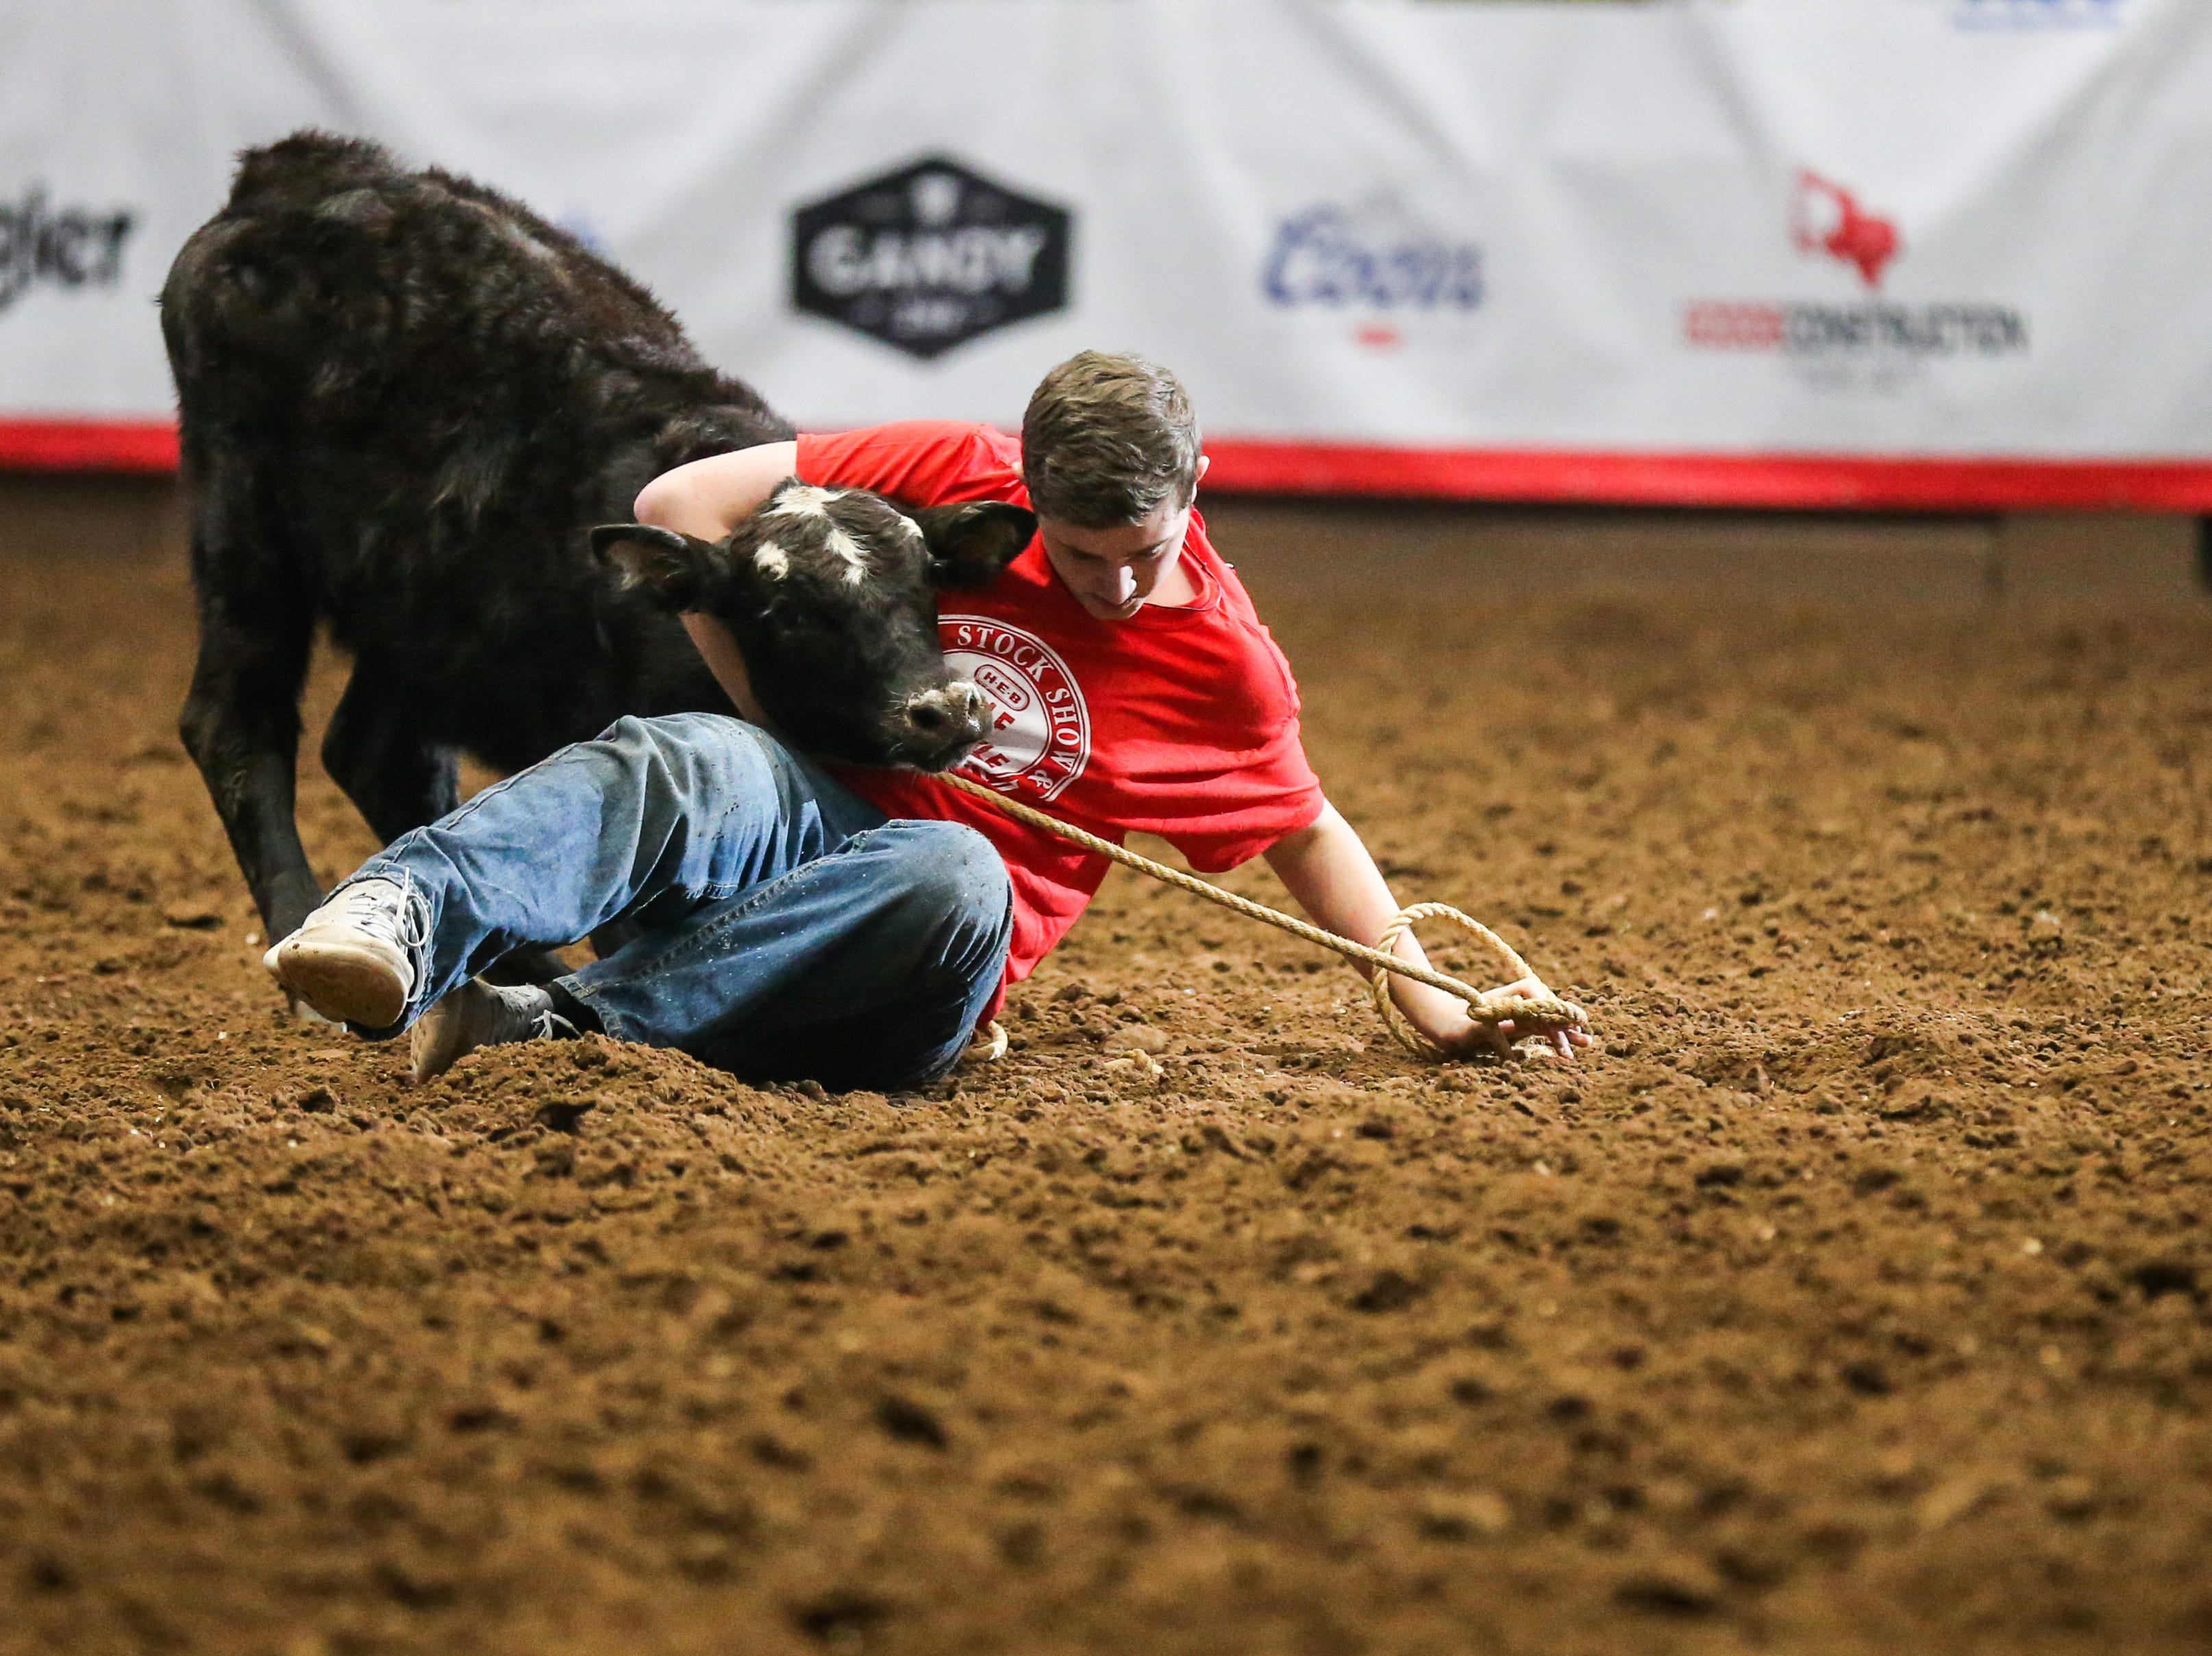 A kid struggles with a calf in the calf scramble during the 4th performance of the San Angelo Stock Show & Rodeo Sunday, Feb. 3, 2019, at Foster Communications Coliseum.